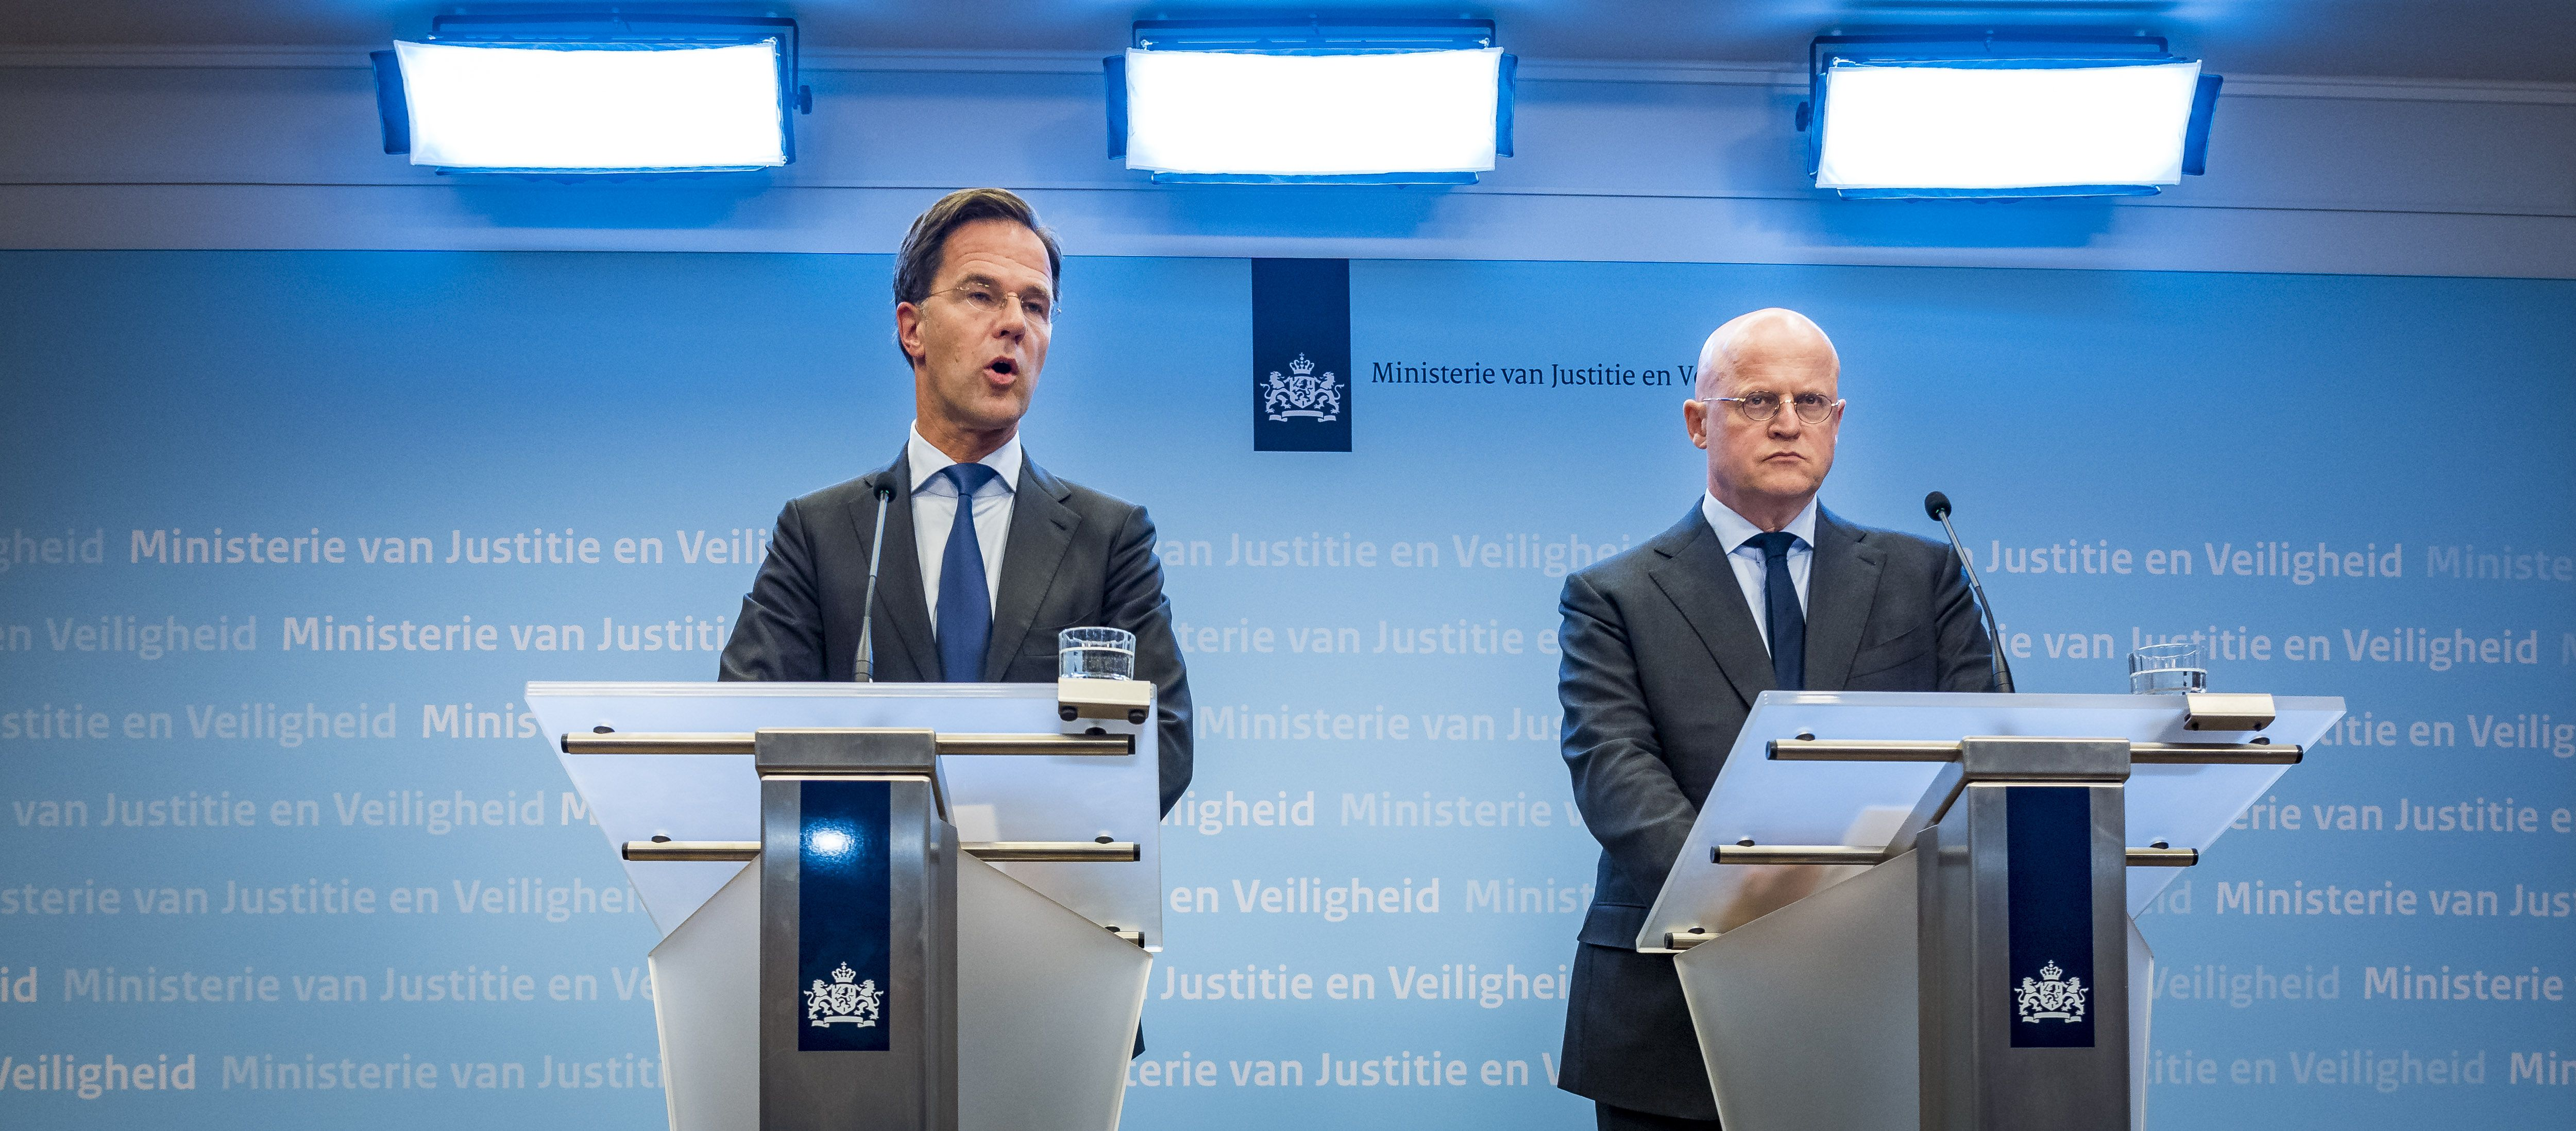 Dutch Prime Minister Mark Rutte (L) and Right, Justice and Security Minister Ferd Grapperhaus speak to the press at the Ministry of Justice and Security in The Hague, on March 18, 2019 following a shooting in a tram in Utrecht. (LEX VAN LIESHOUT/AFP/Getty Images)